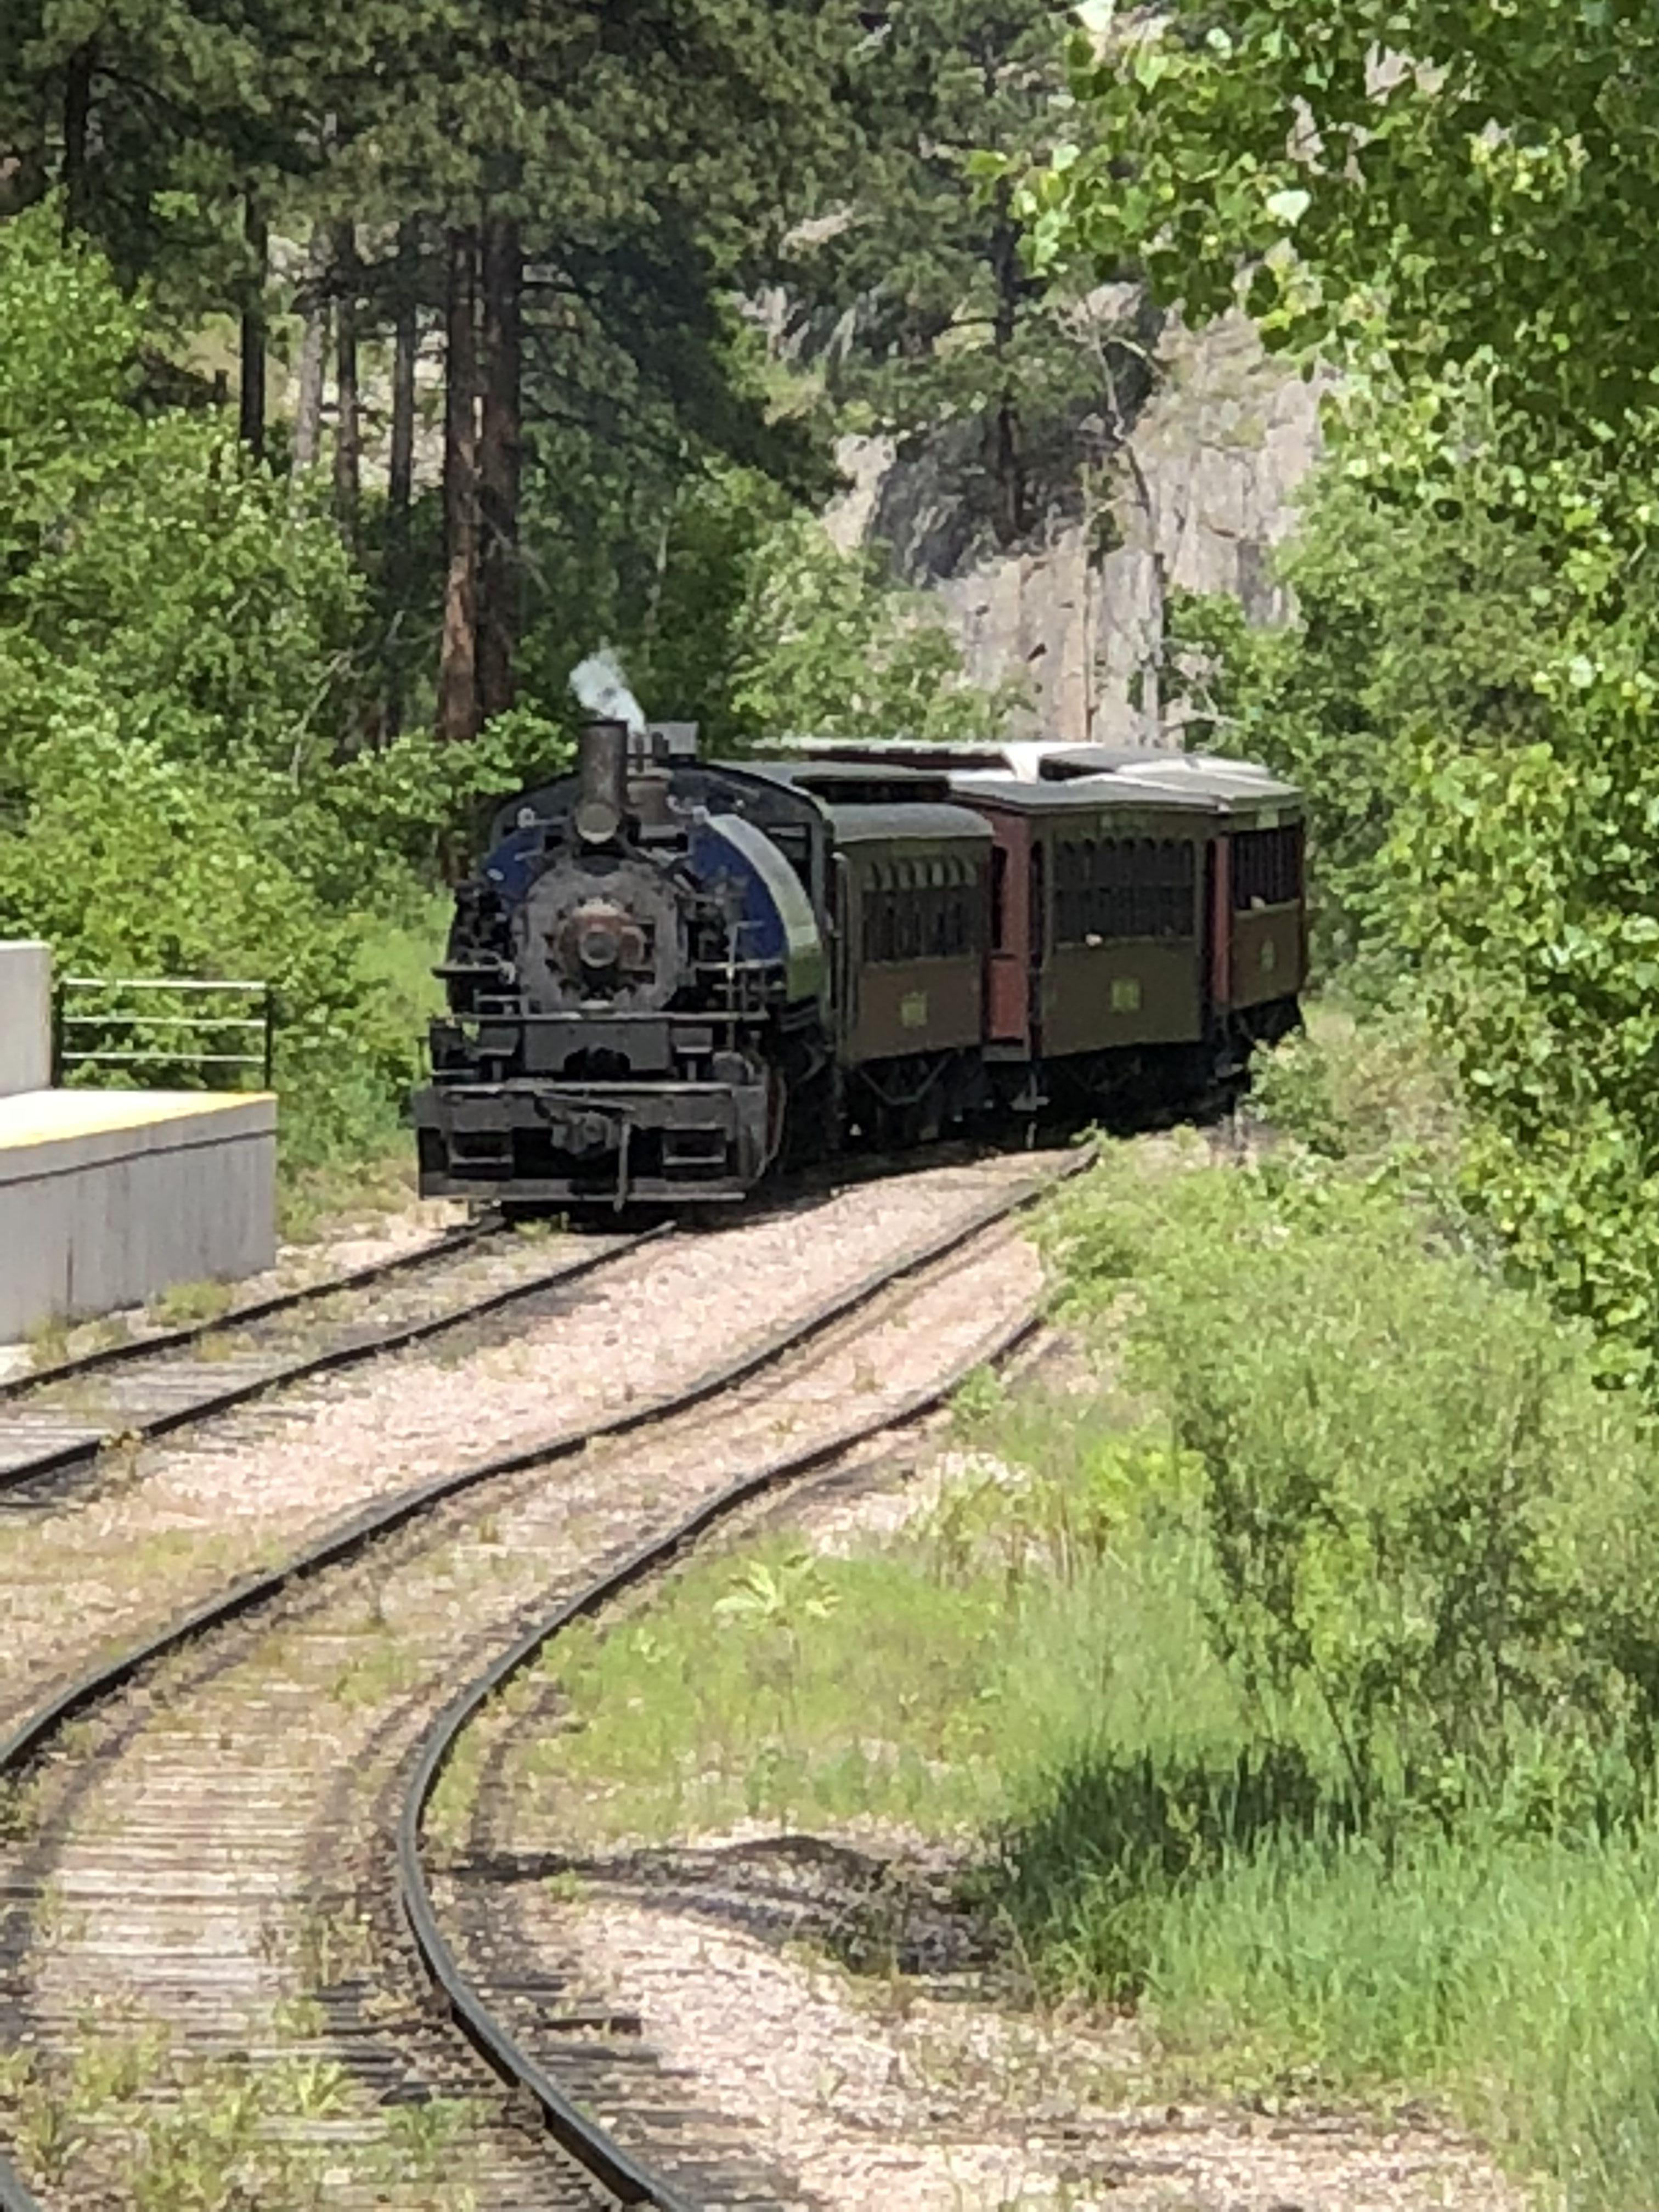 Train Coming into the Station with 1880 Train: A 19th Century Train Ride Tour